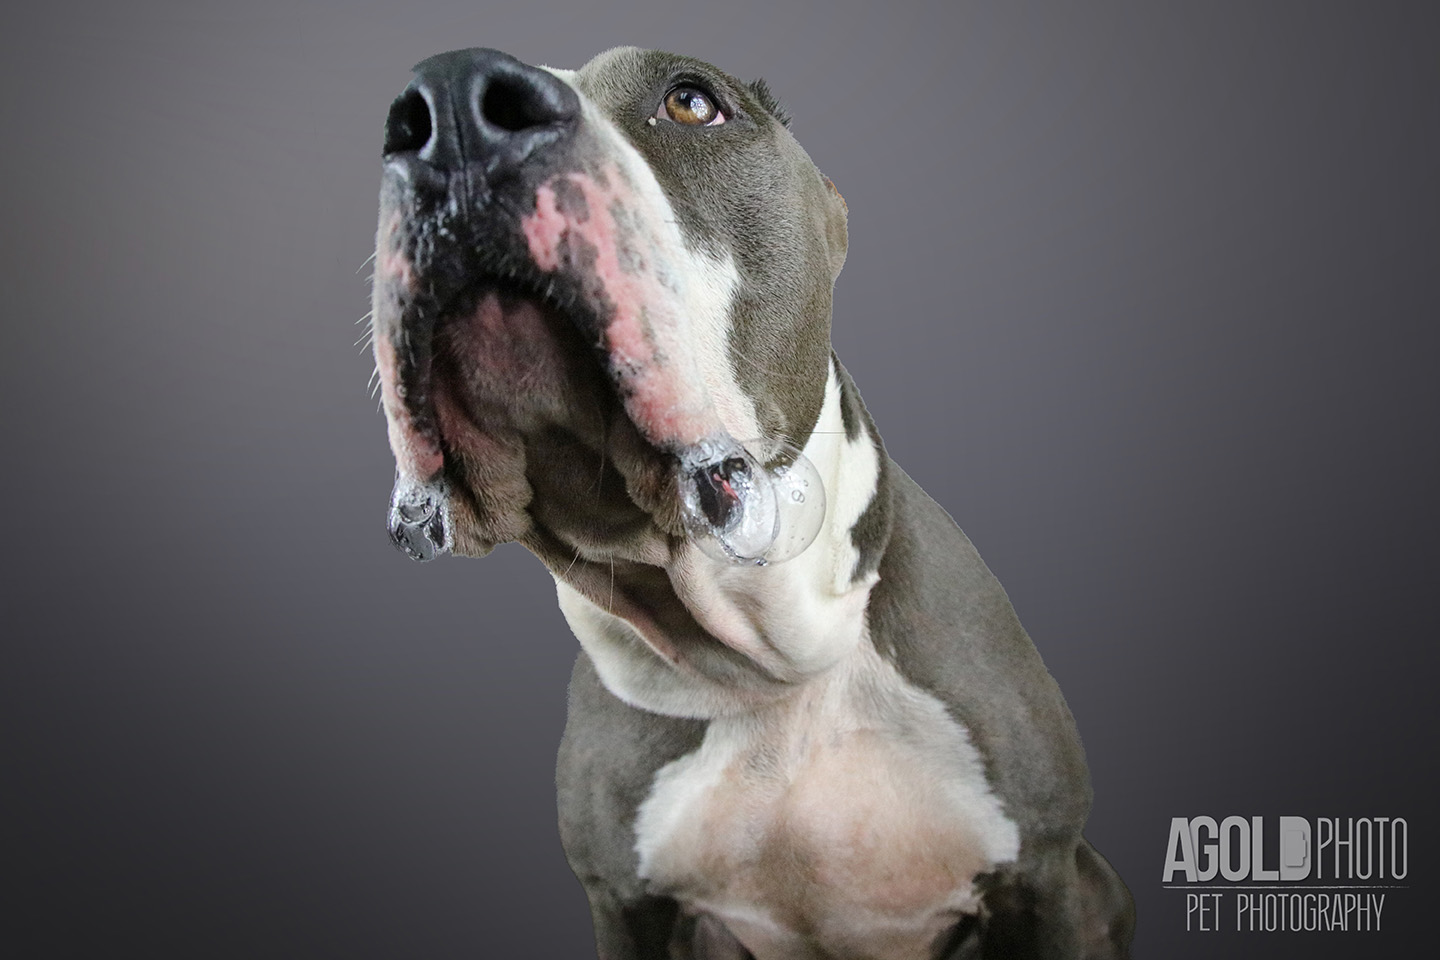 west-1_agoldphoto-tampa-pet-photography__agoldphoto-tampa-pet-photography_